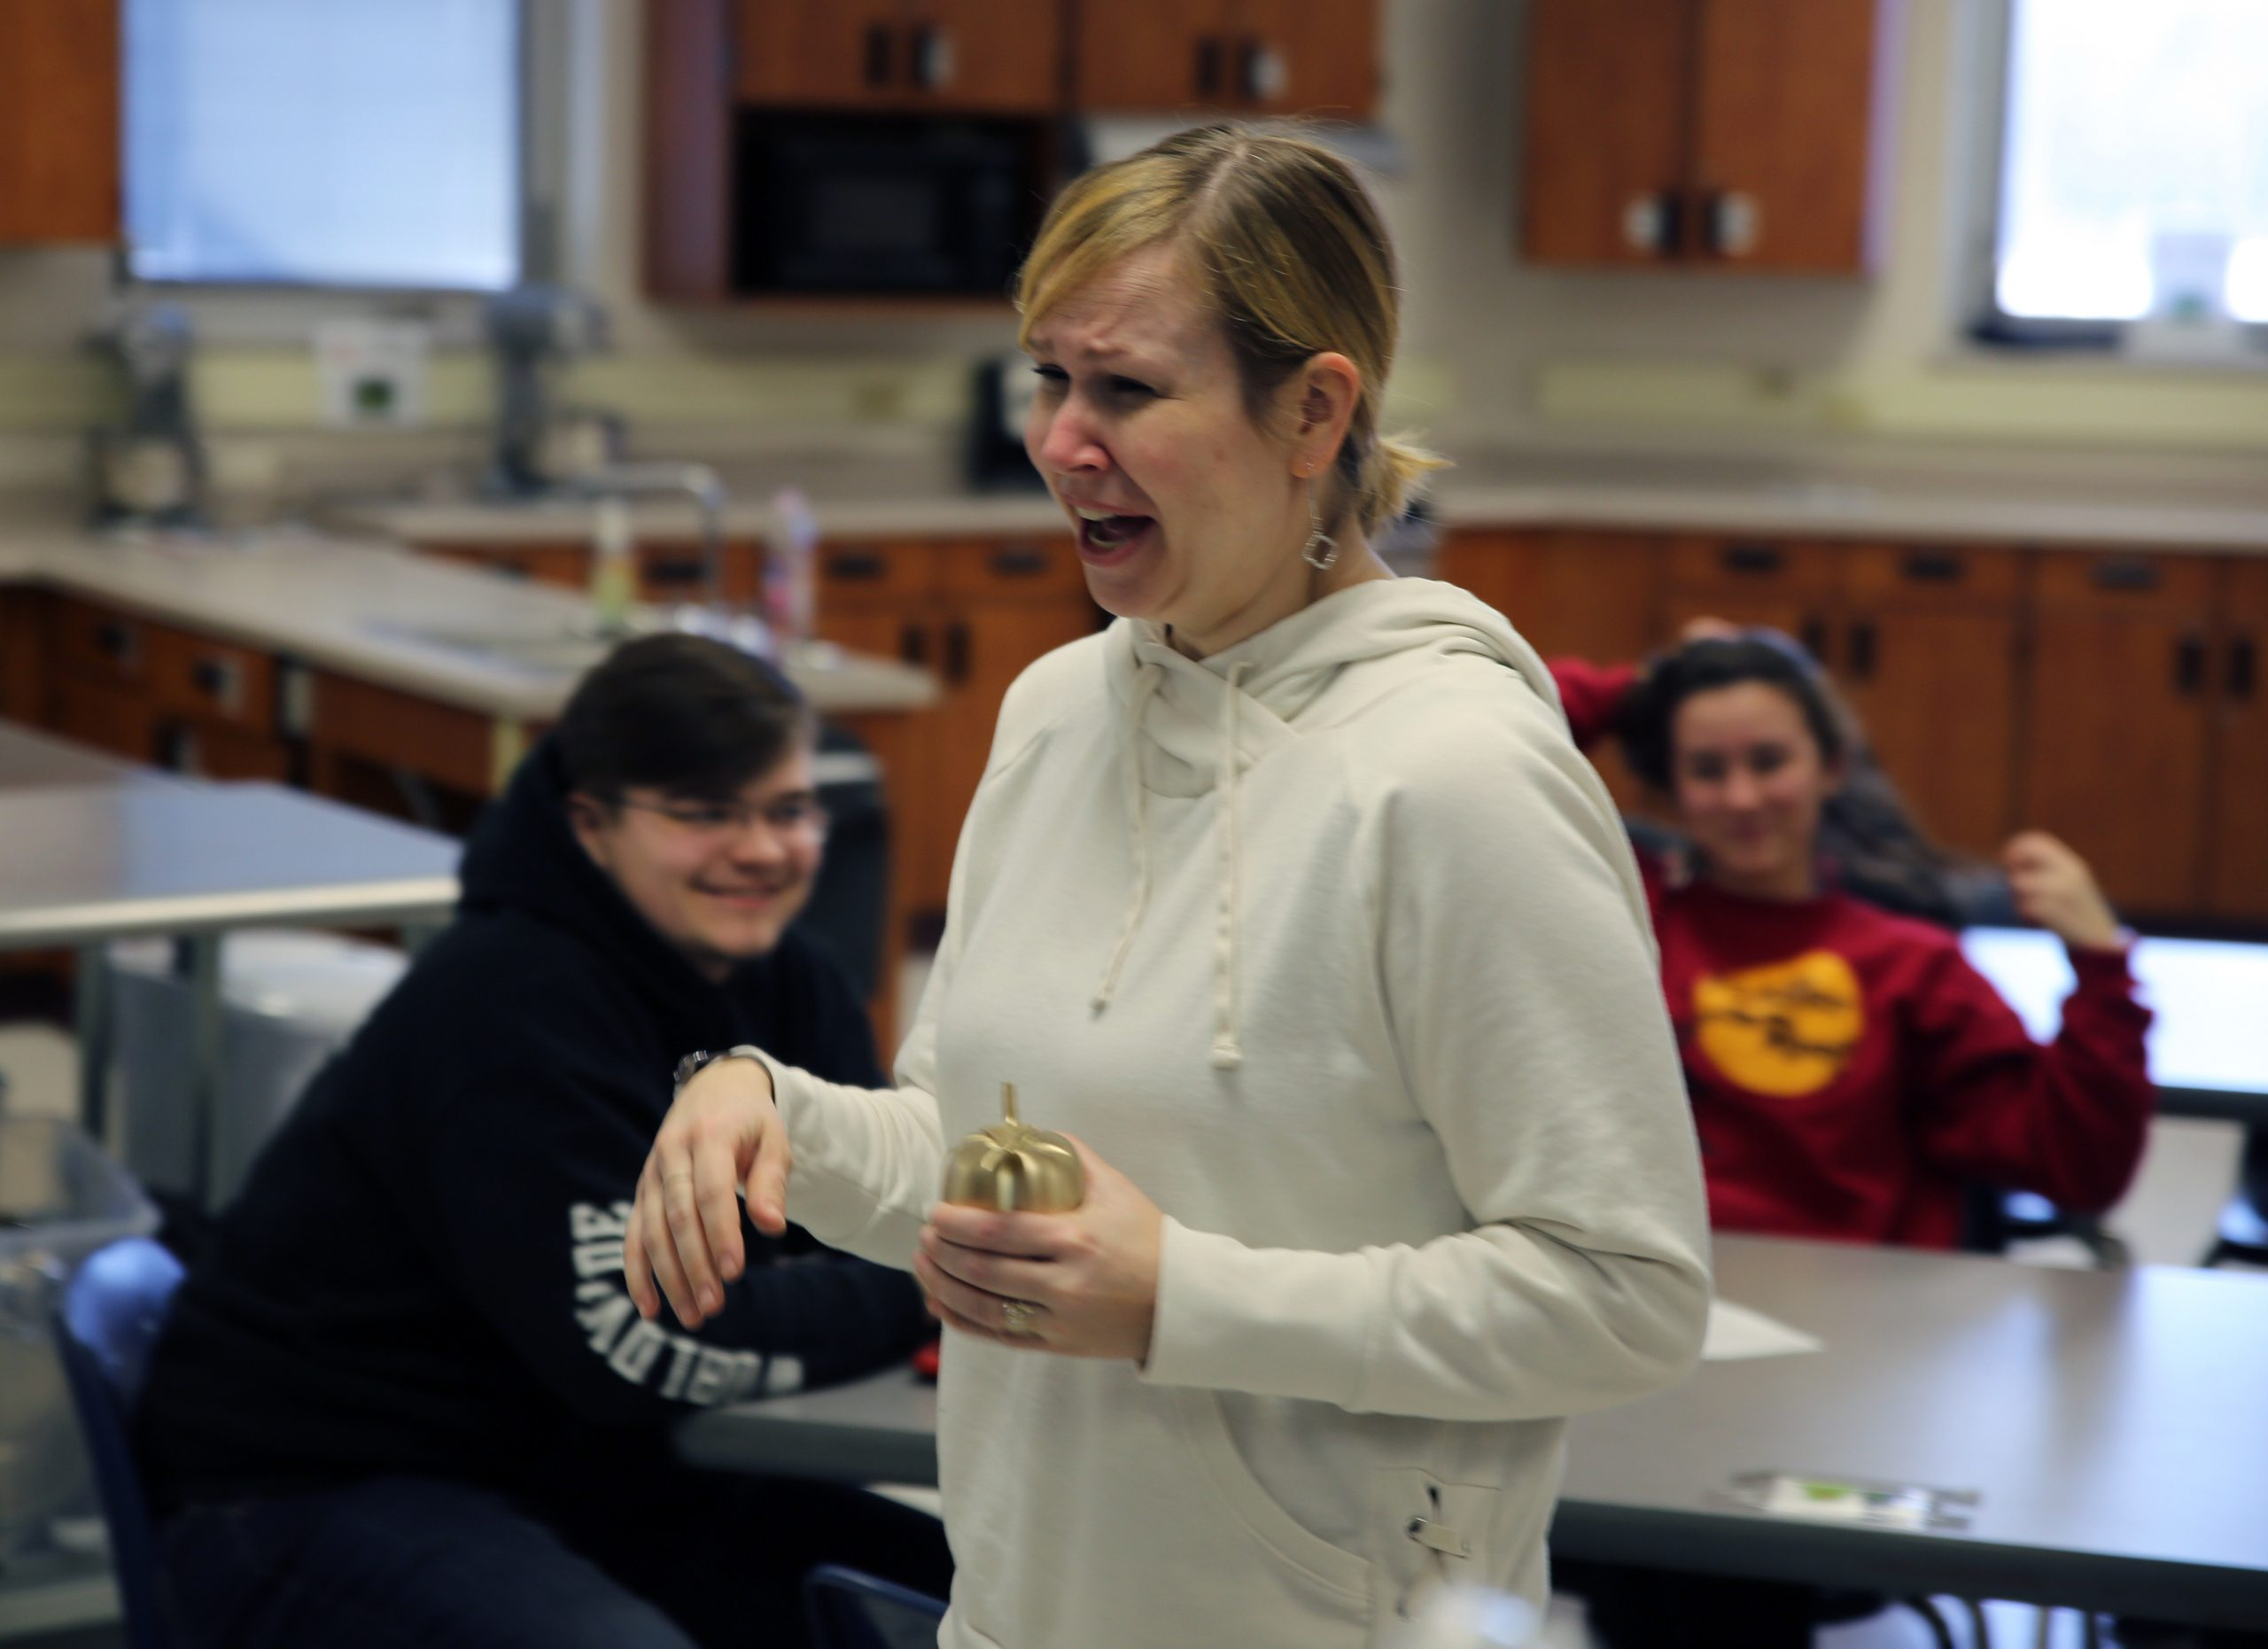 Pulaski teacher learns of award during class